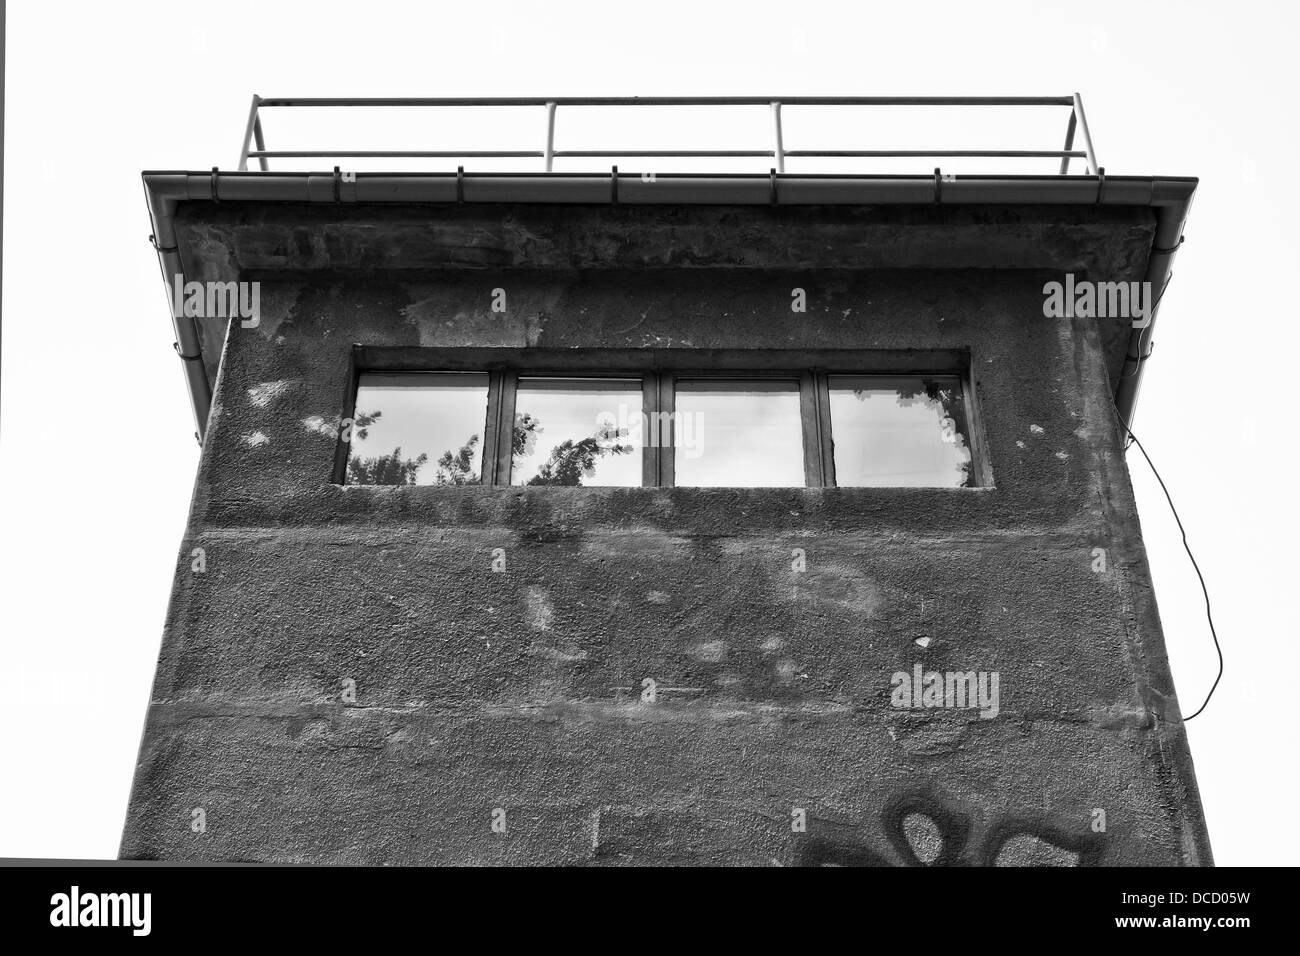 Watchtower in the former German Democratic Republic, GDR - Stock Image